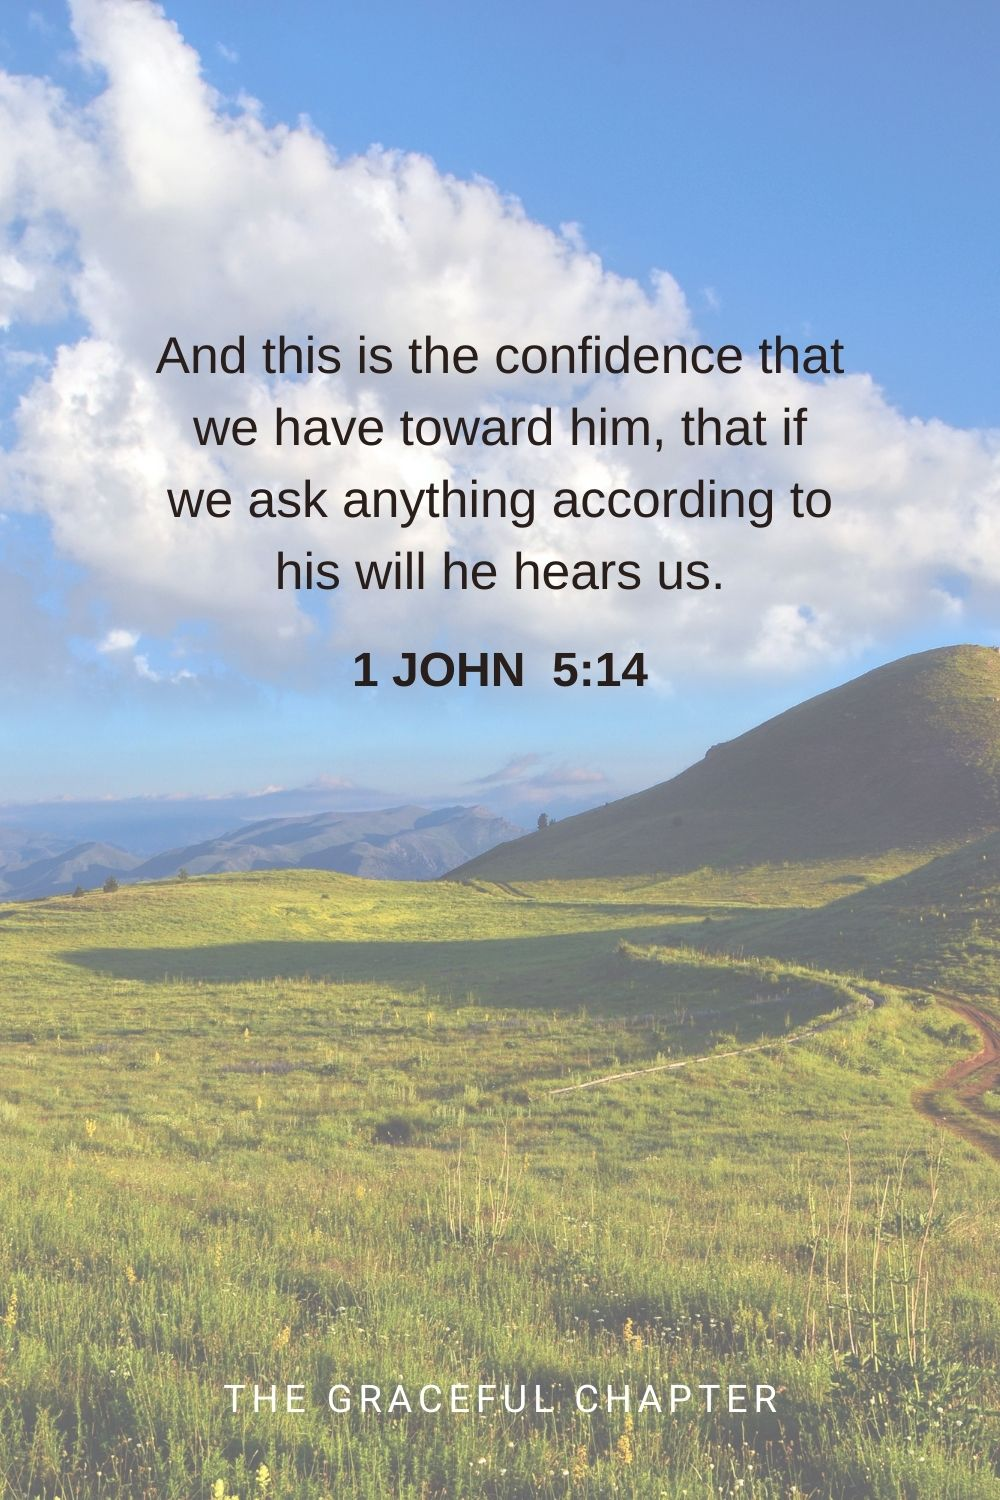 And this is the confidence that we have toward him, that if we ask anything according to his will he hears us. 1 John 5:14